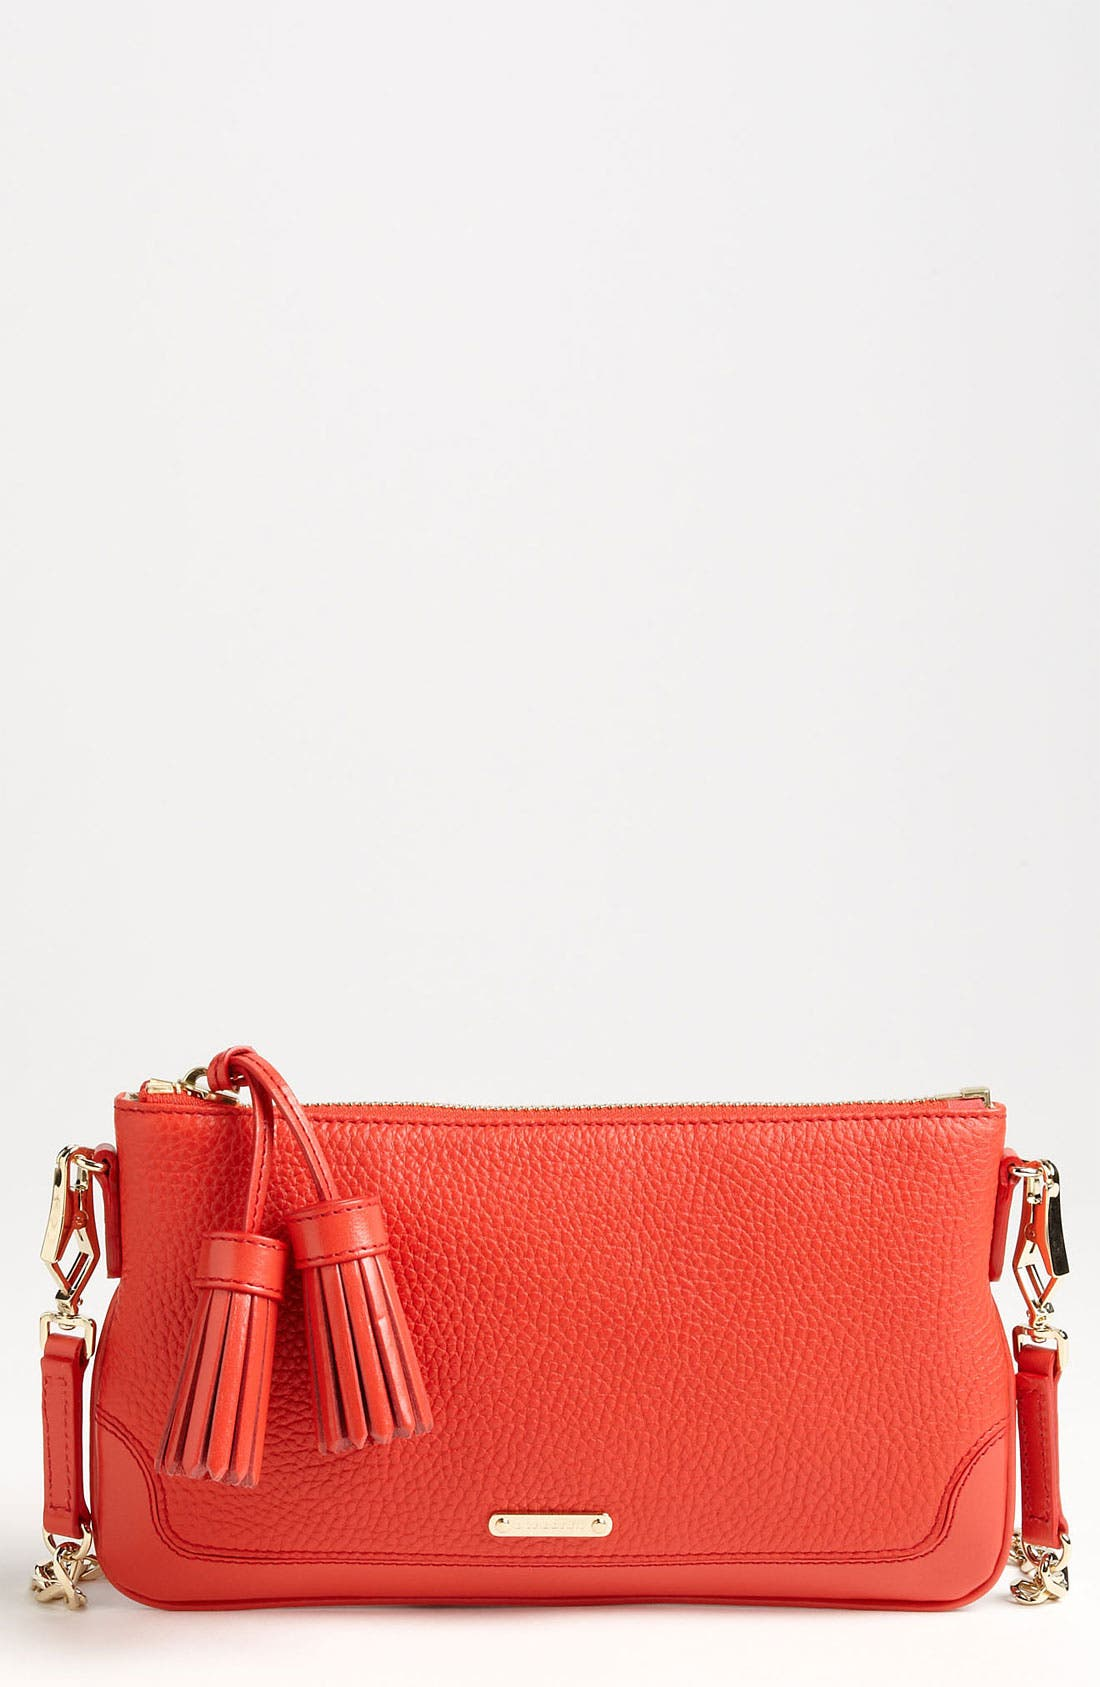 Alternate Image 1 Selected - Burberry 'London Grainy' Crossbody Clutch